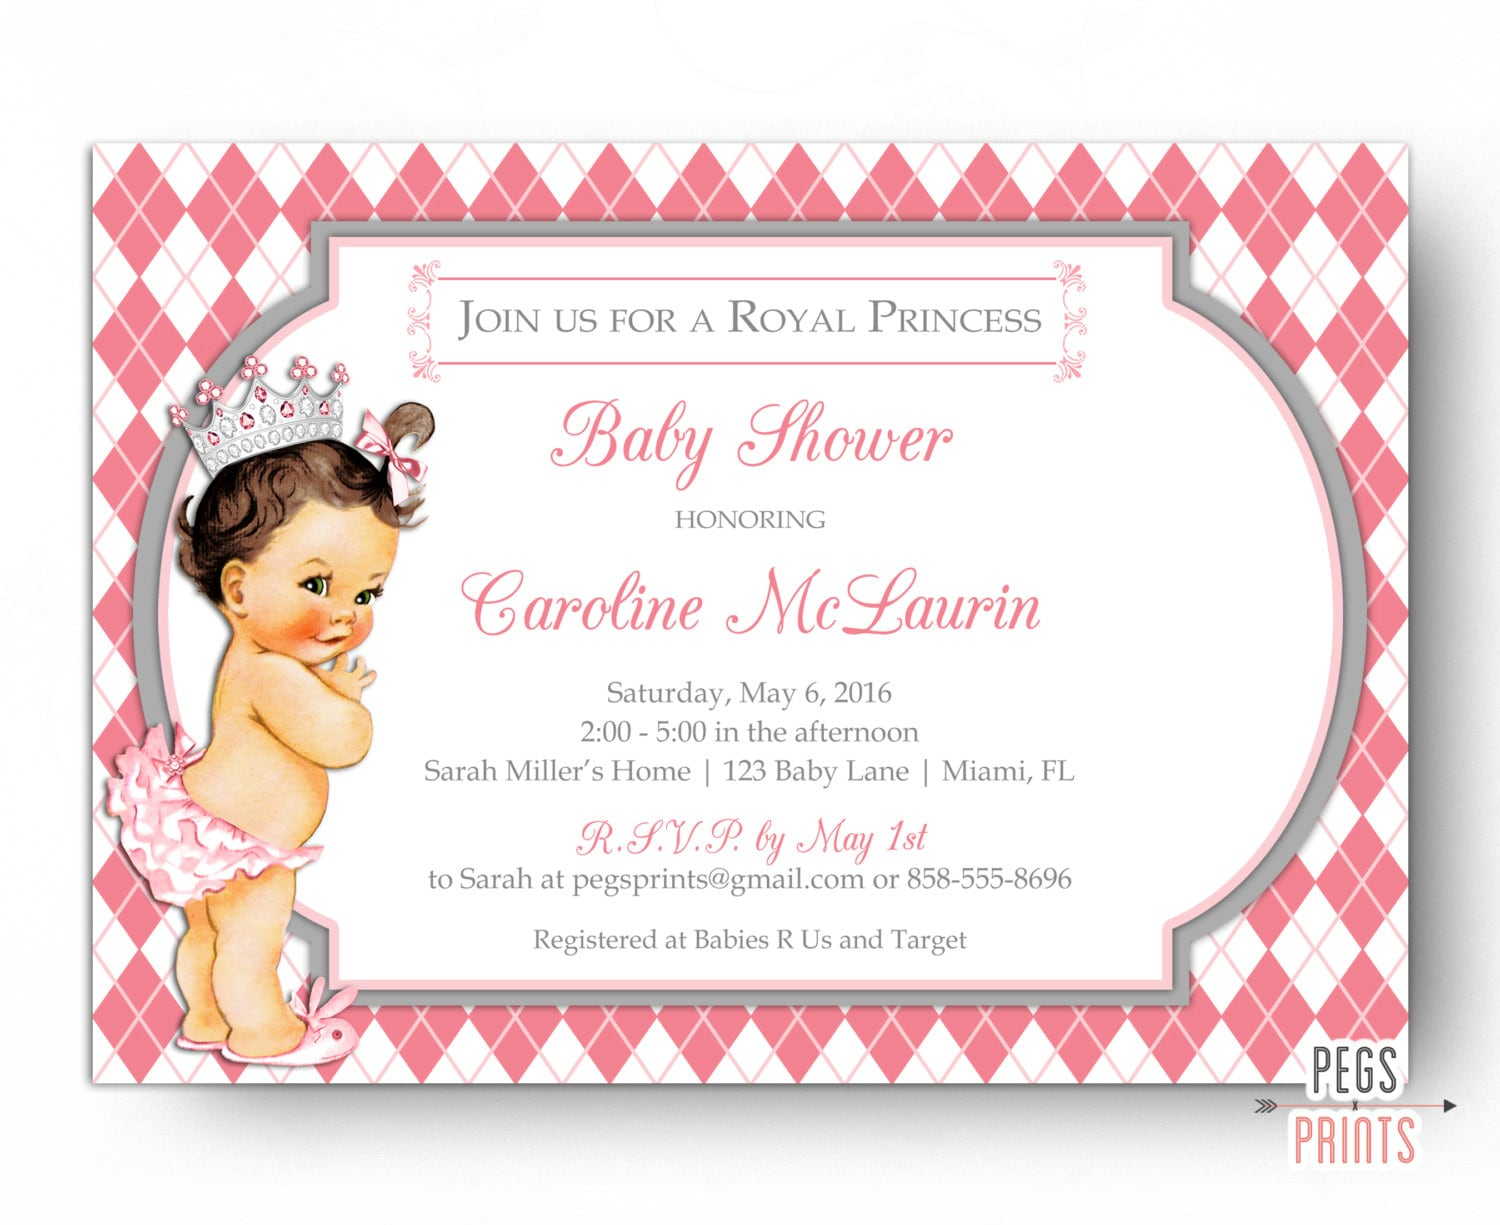 Princess Baby Shower Invitation Girl PRINTABLE Royal